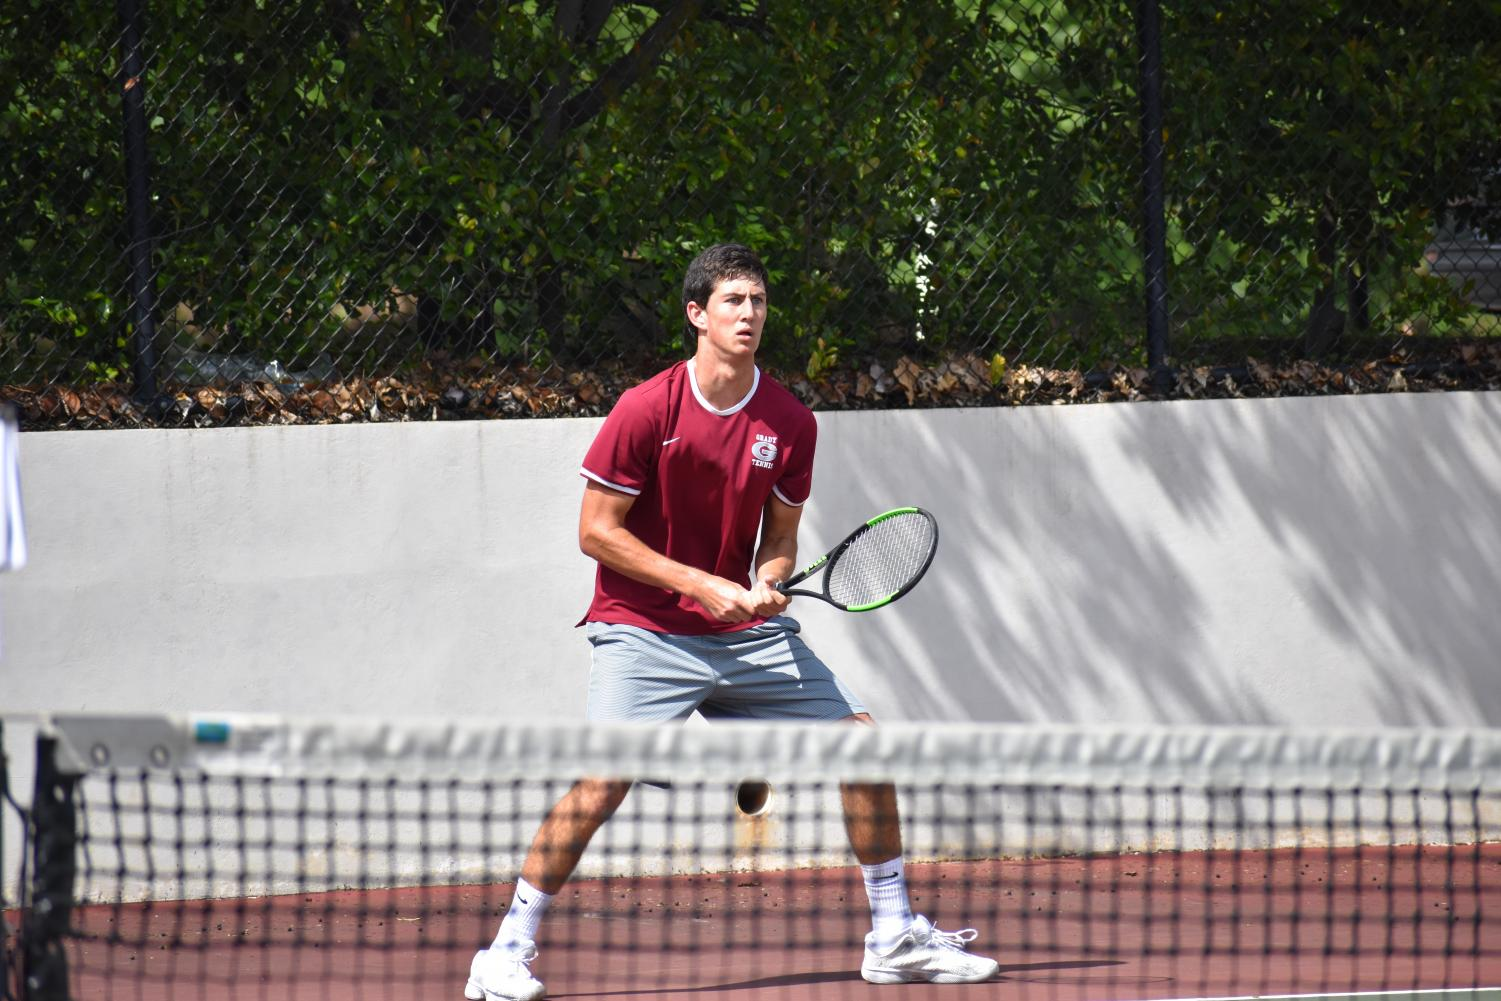 FIGHTING UNTIL THE END: Josh Wolfe stands ready to return serve against Flowery Branch. The Grady boys  failed to reach the Elite Eight this season.